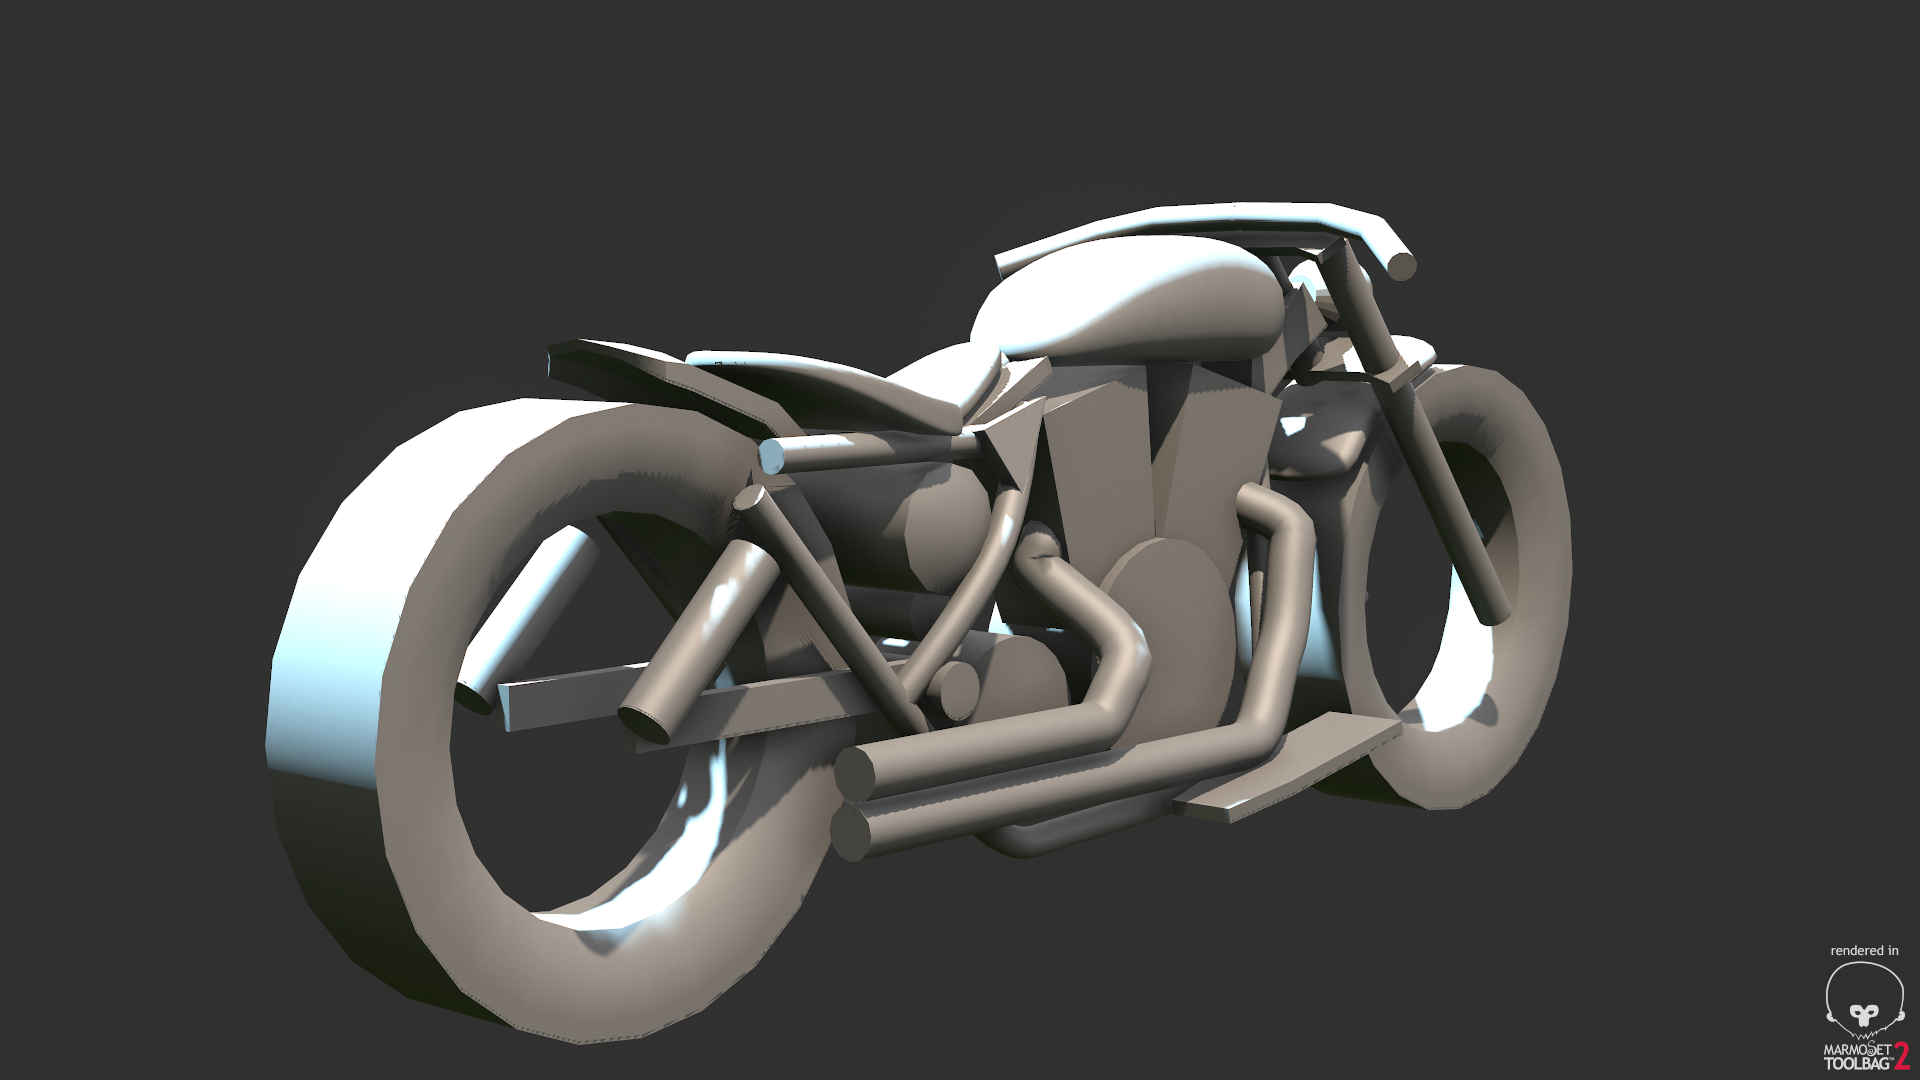 wip_bobber_blockout_03_by_bit_winchester-d7nuq4i.png